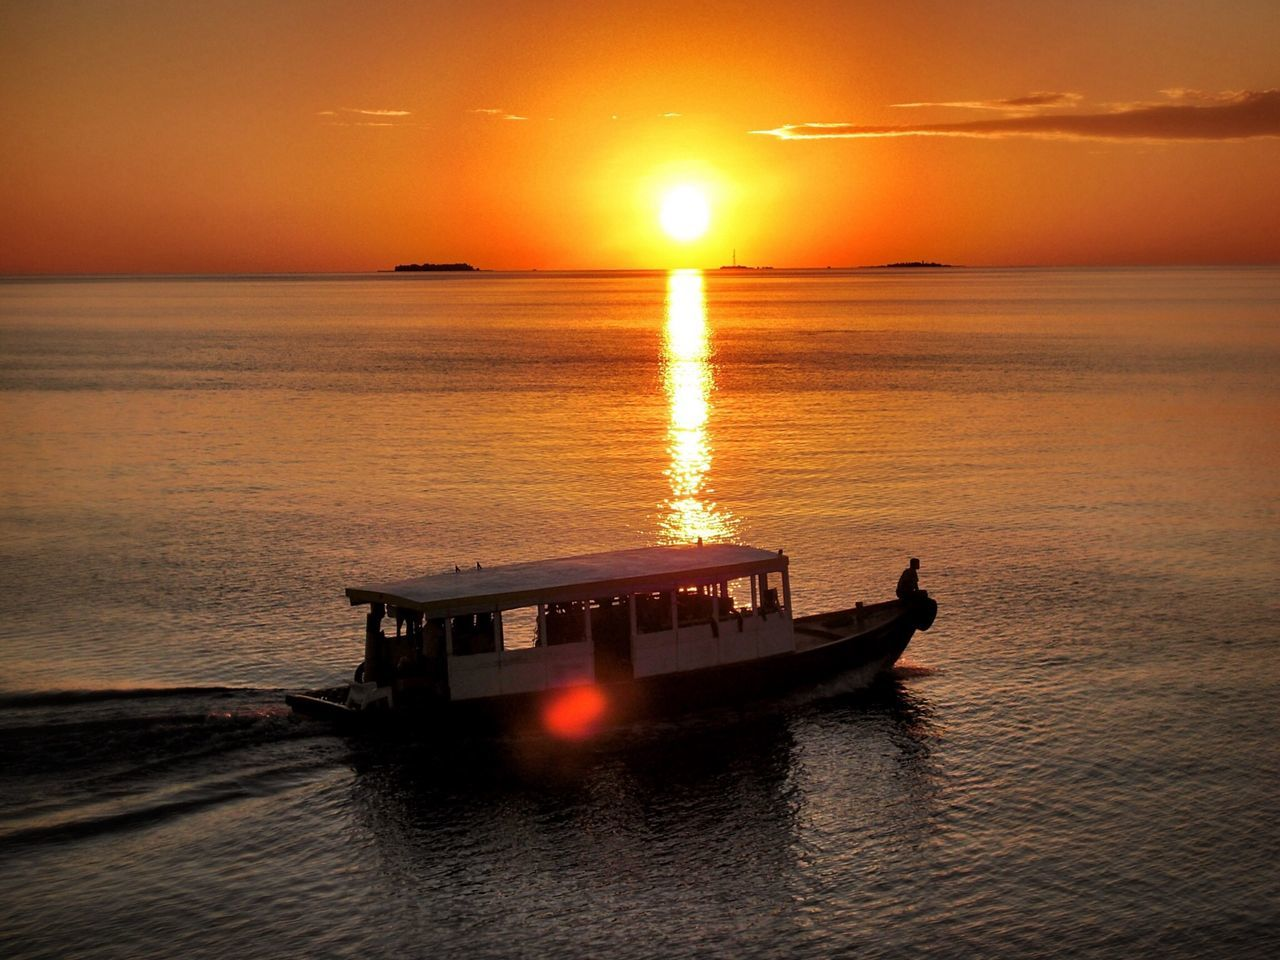 High Angle View Of Boat Moving On Sea Against Sky During Sunset